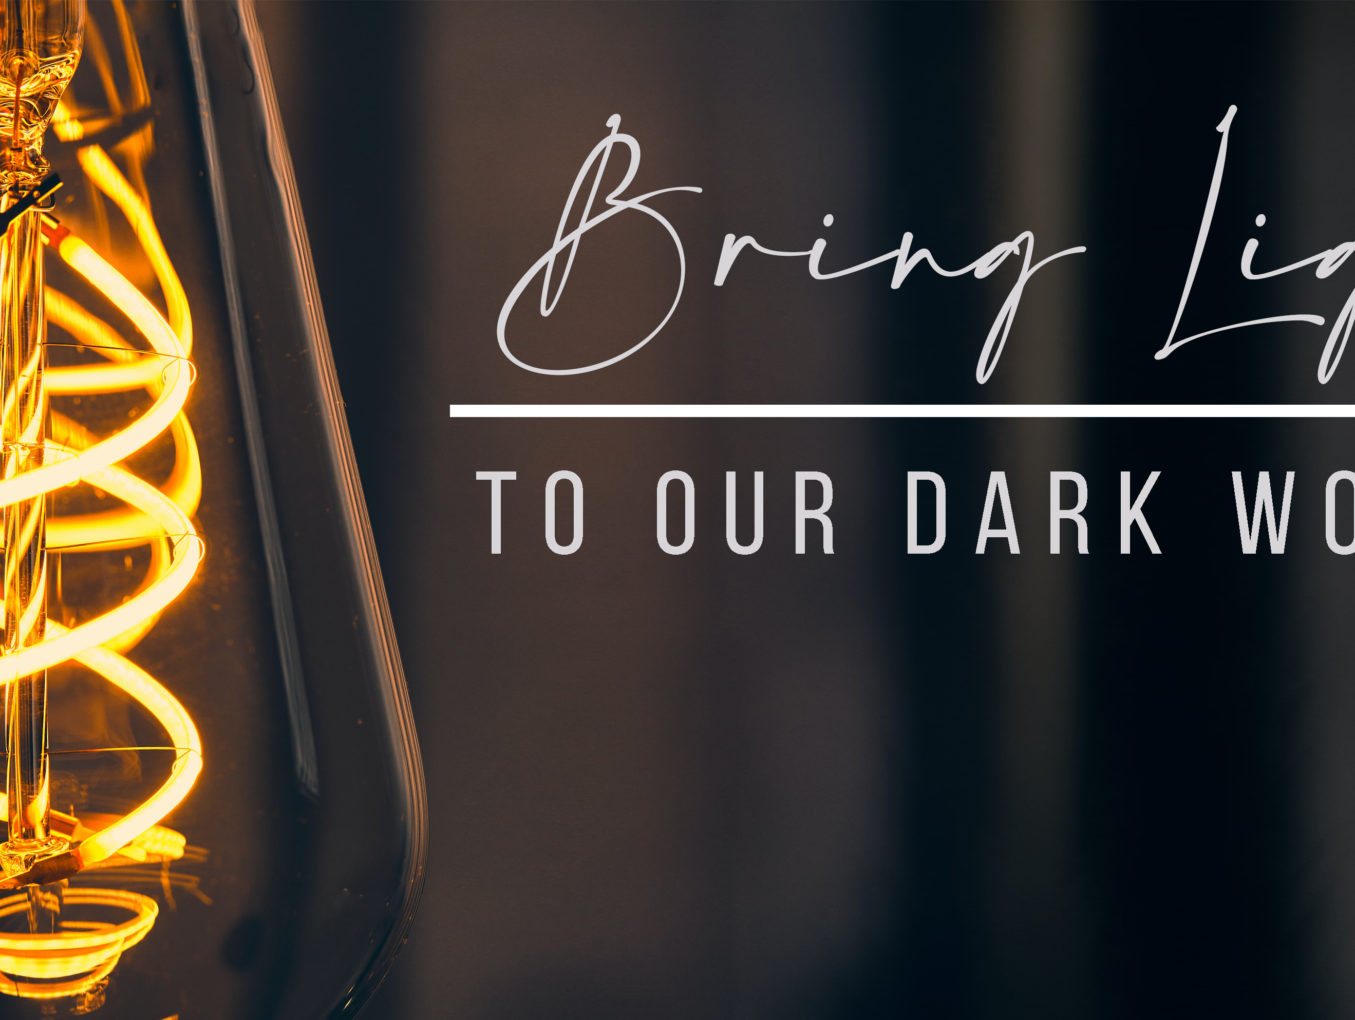 Bringing Light To Our Dark World